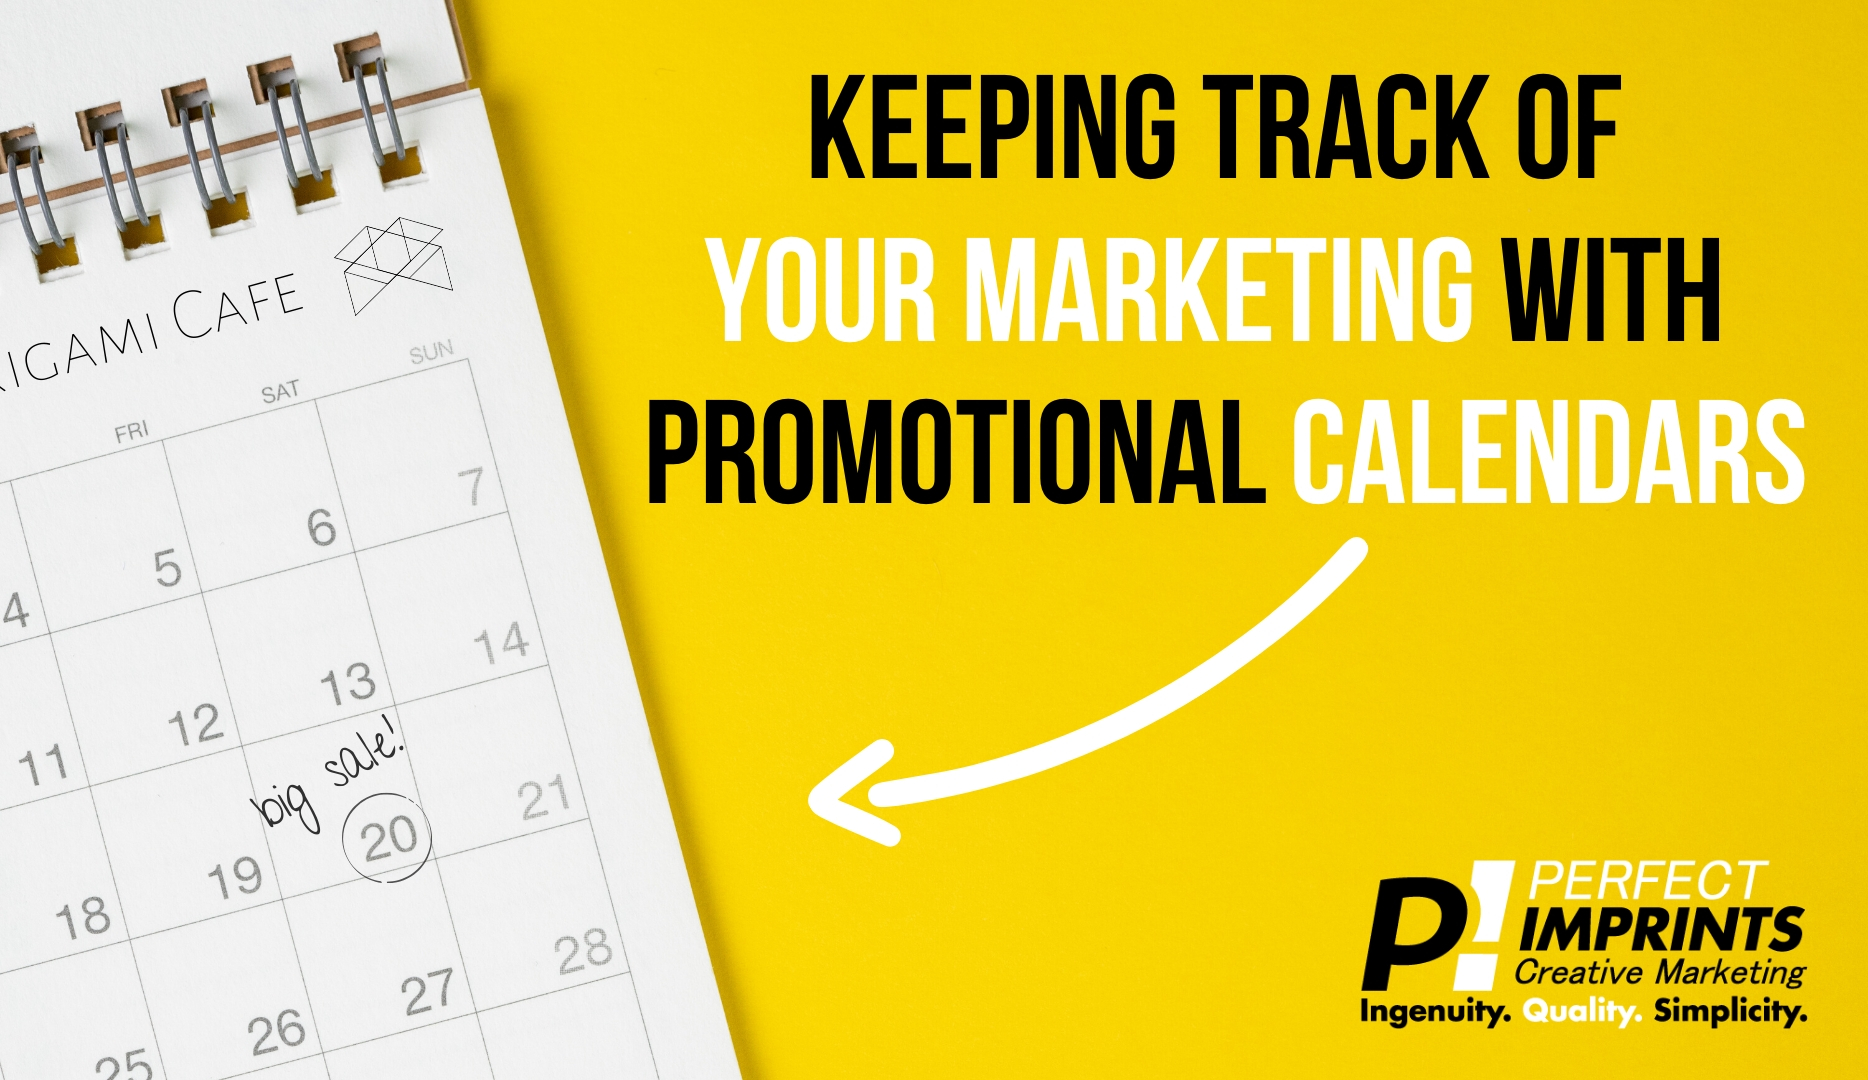 Keeping Track of Your Marketing with Promotional Calendars